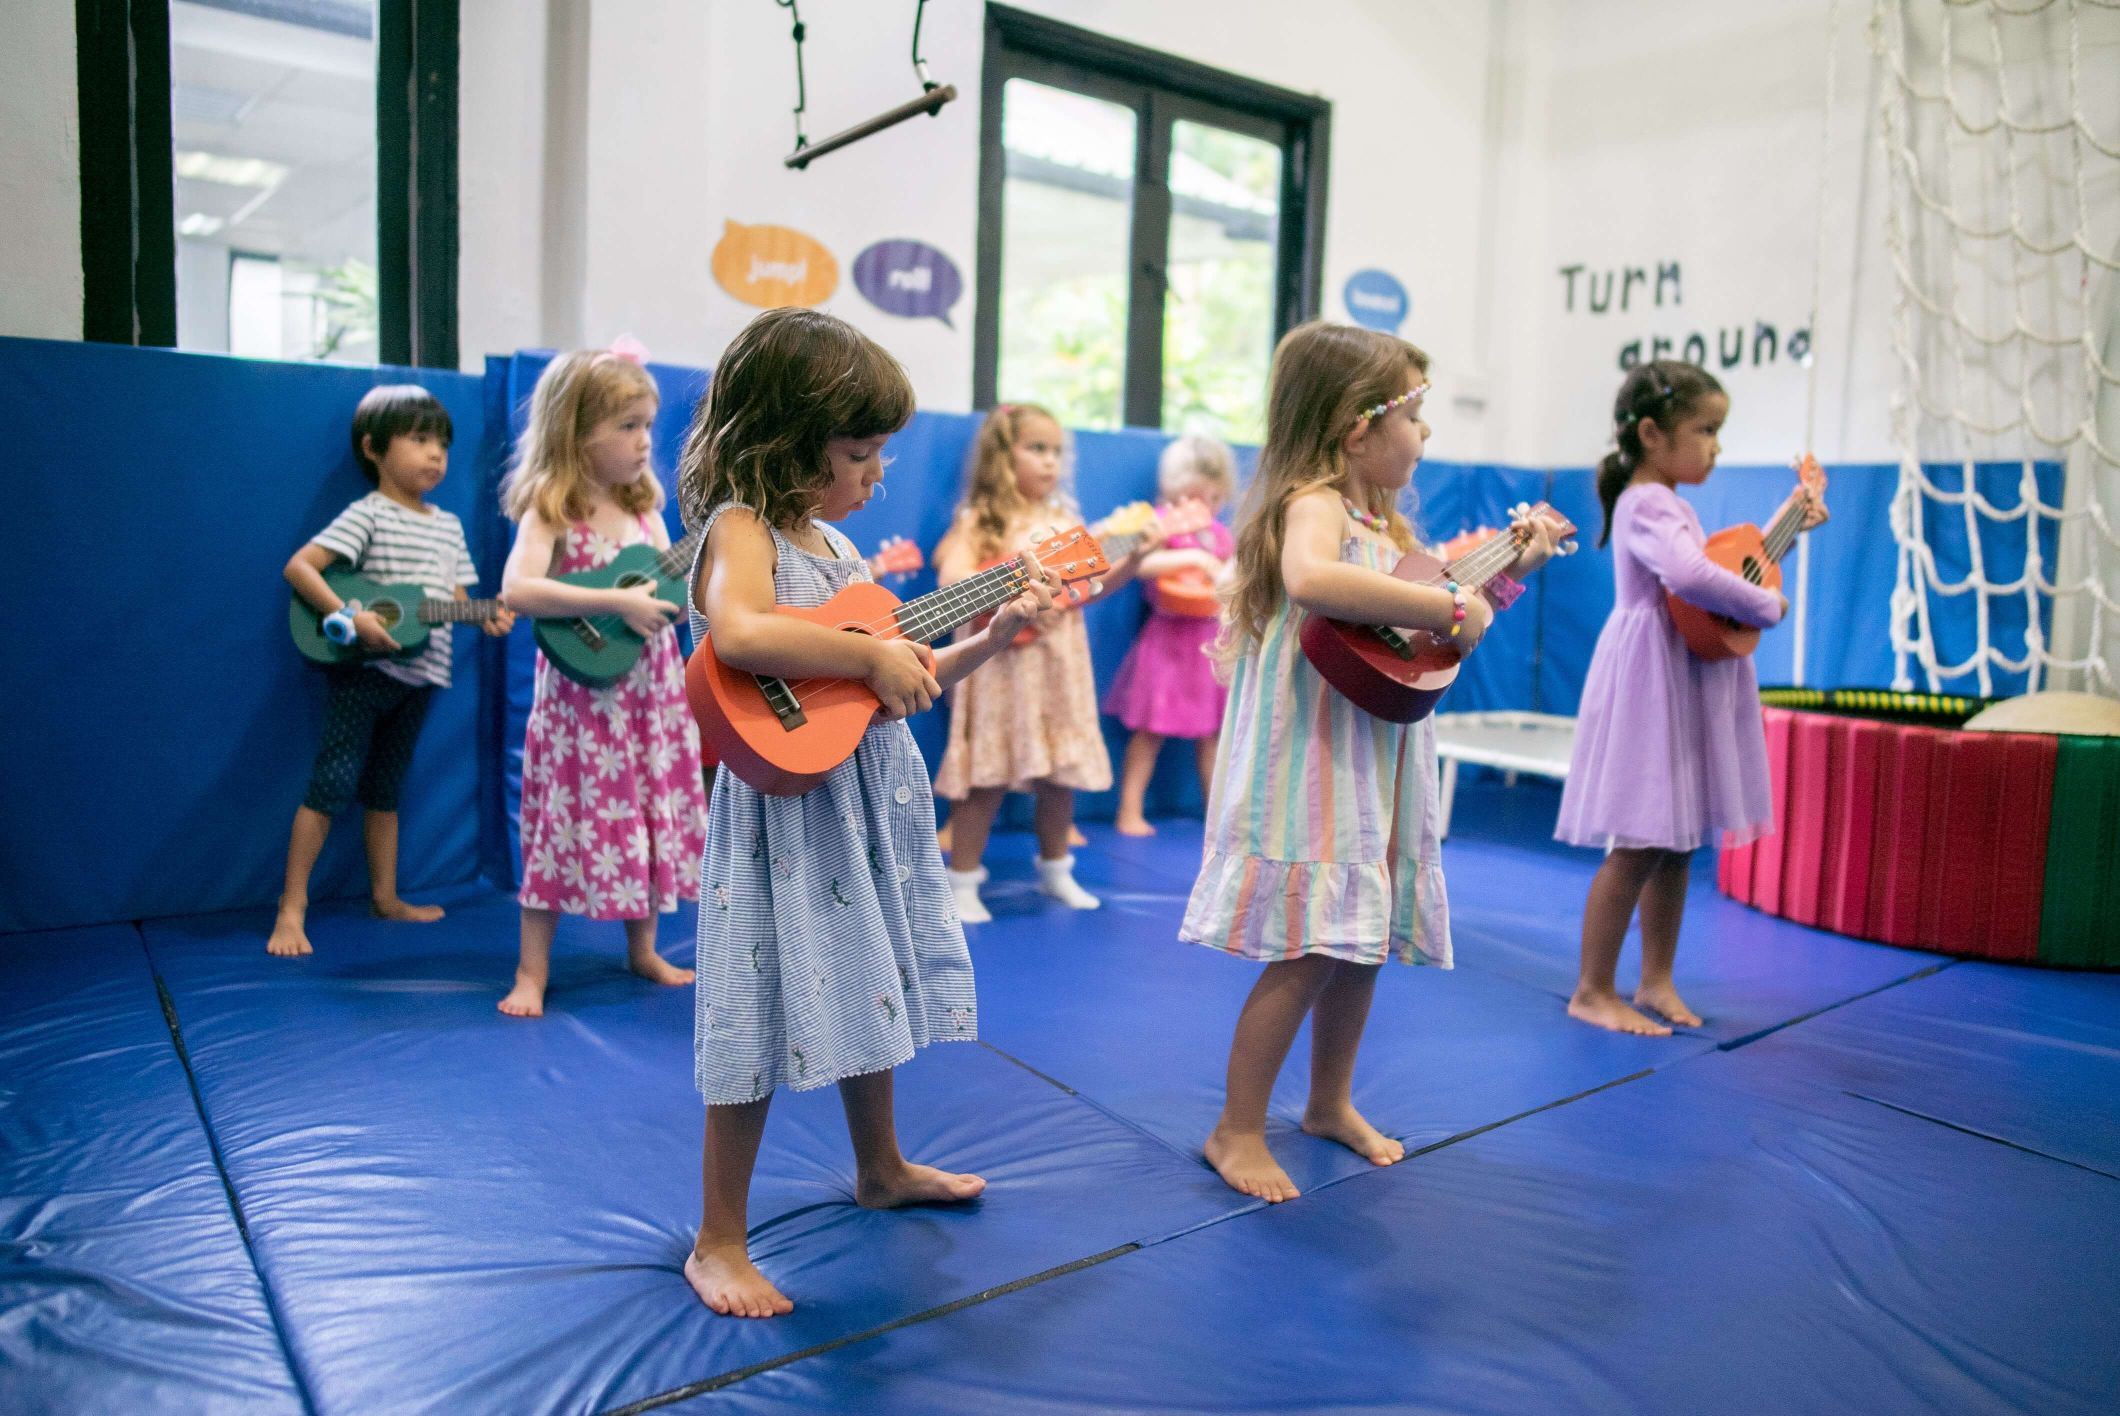 The importance of music and movement in preschool